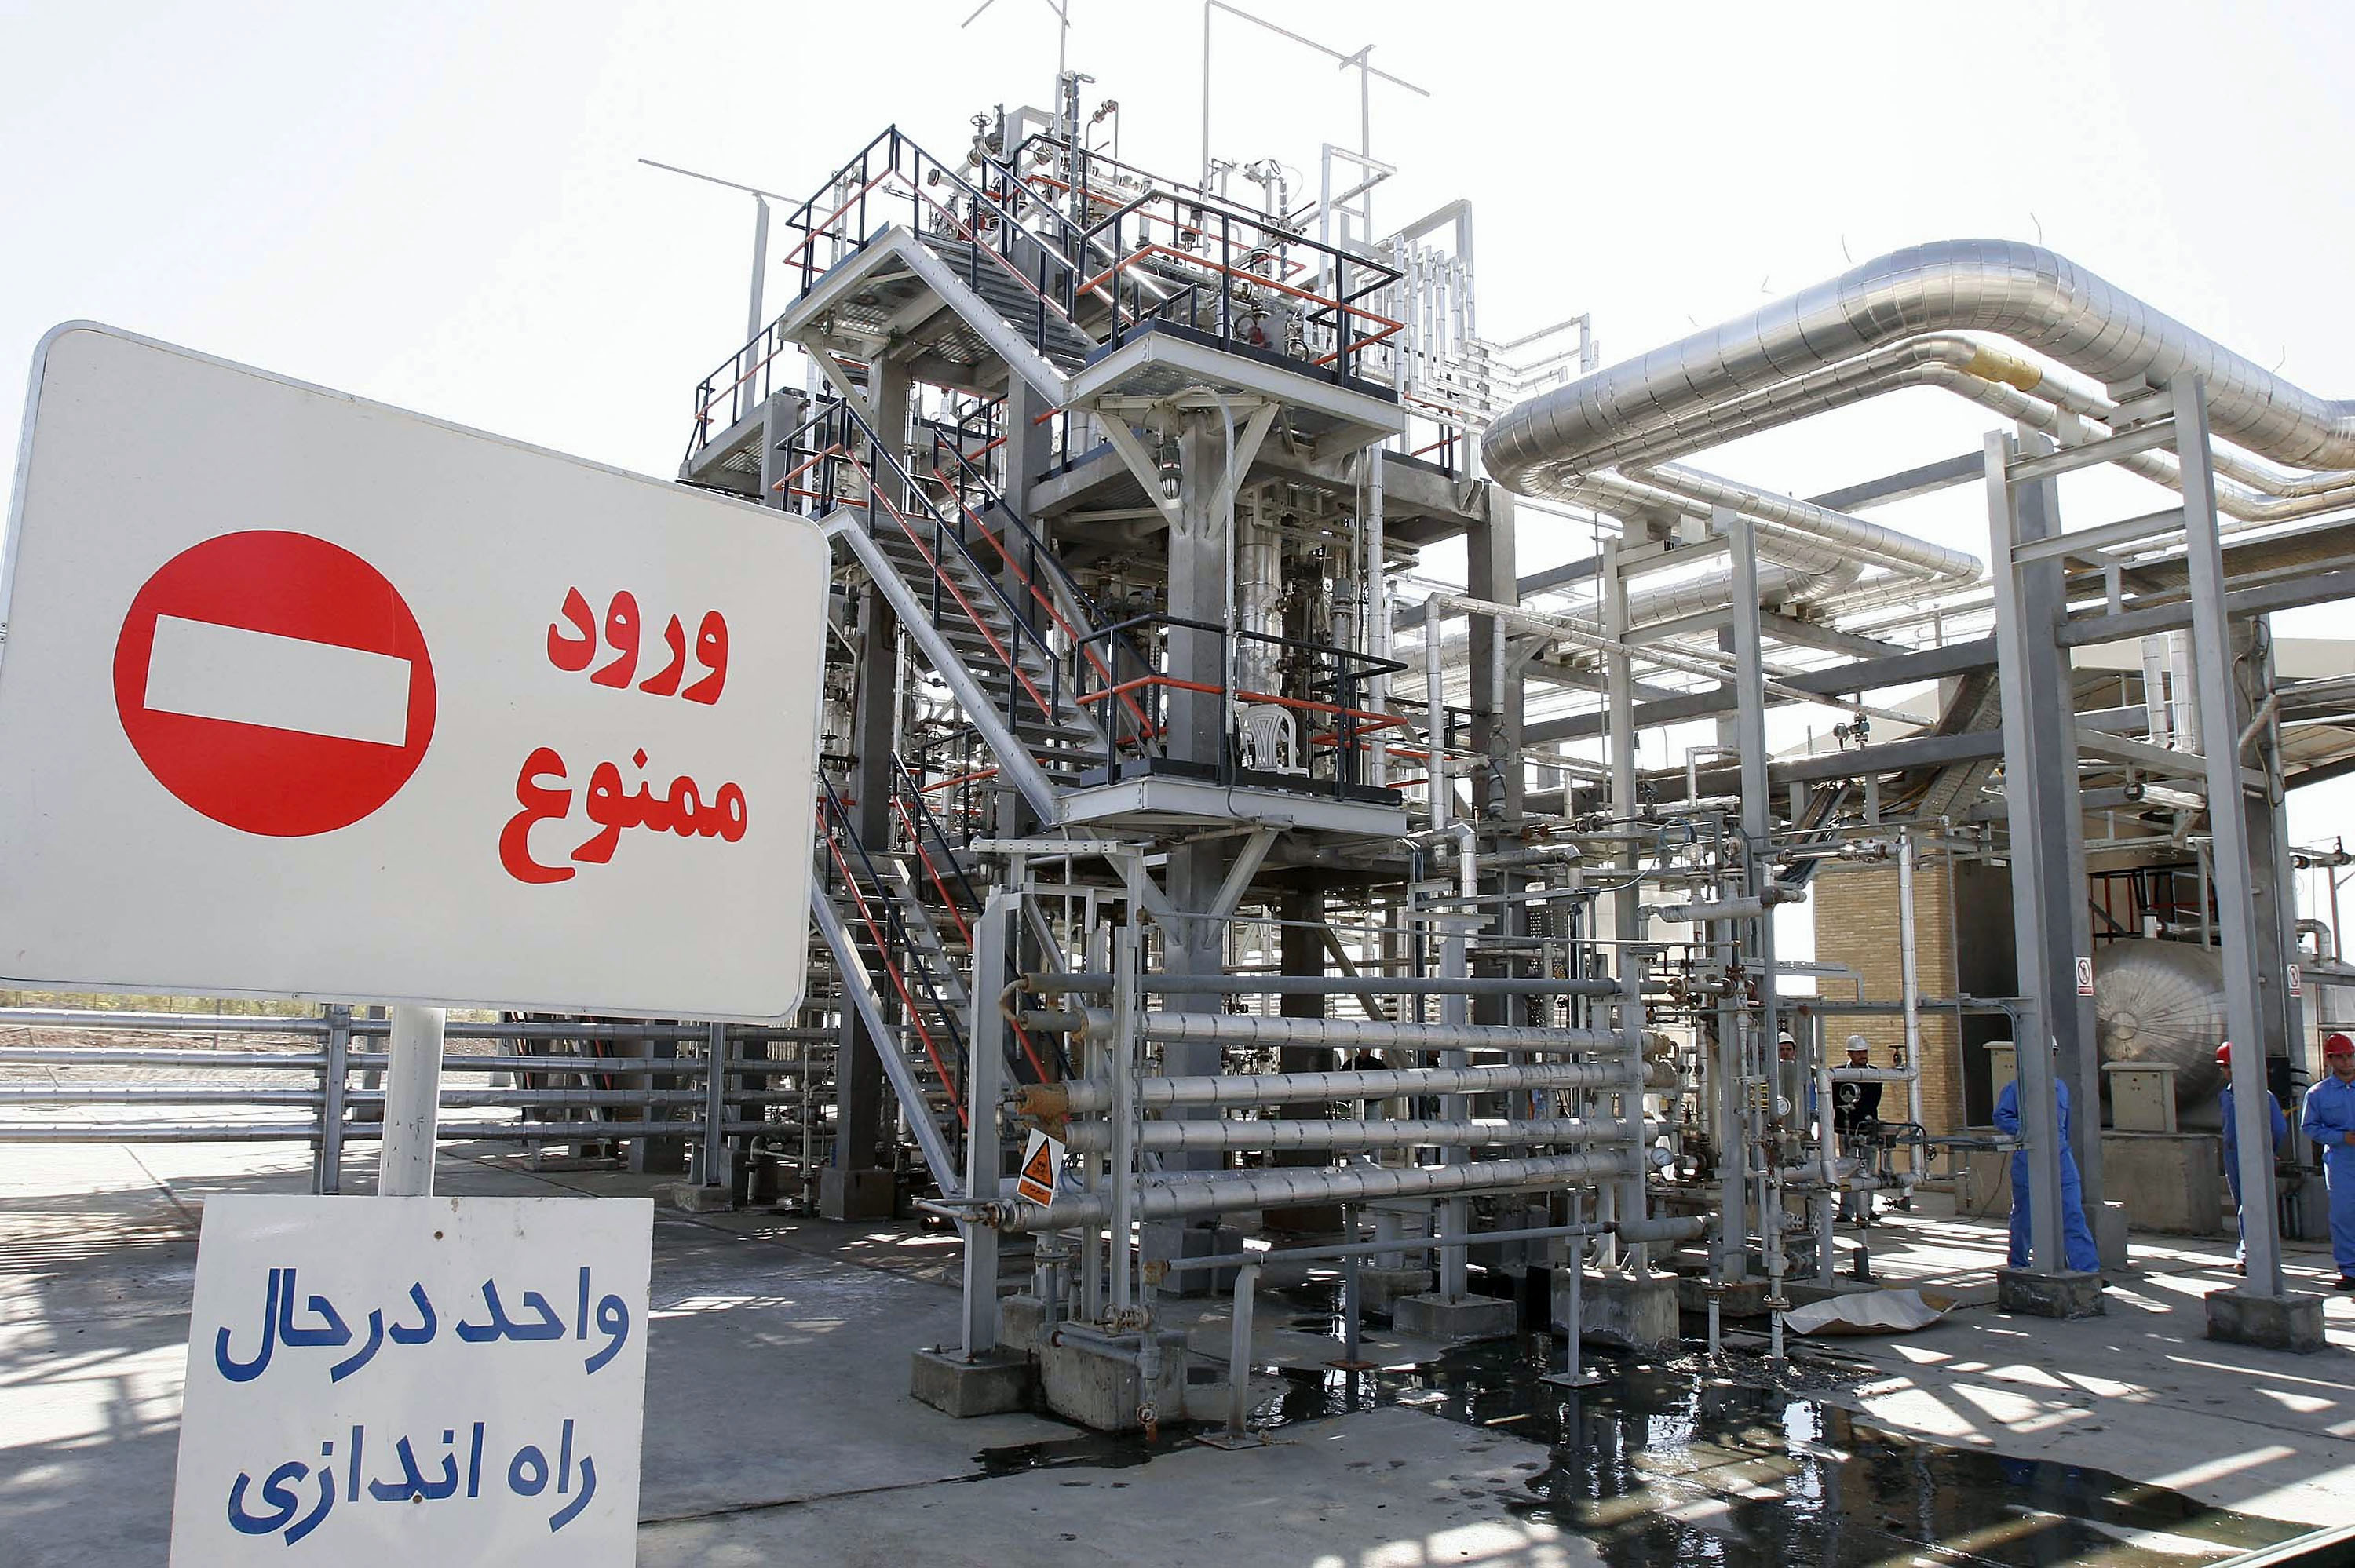 The Obama Administration argues Iran's Arak nuclear facility won't be capable of producing fuel for nuclear weapons under the proposed deal.